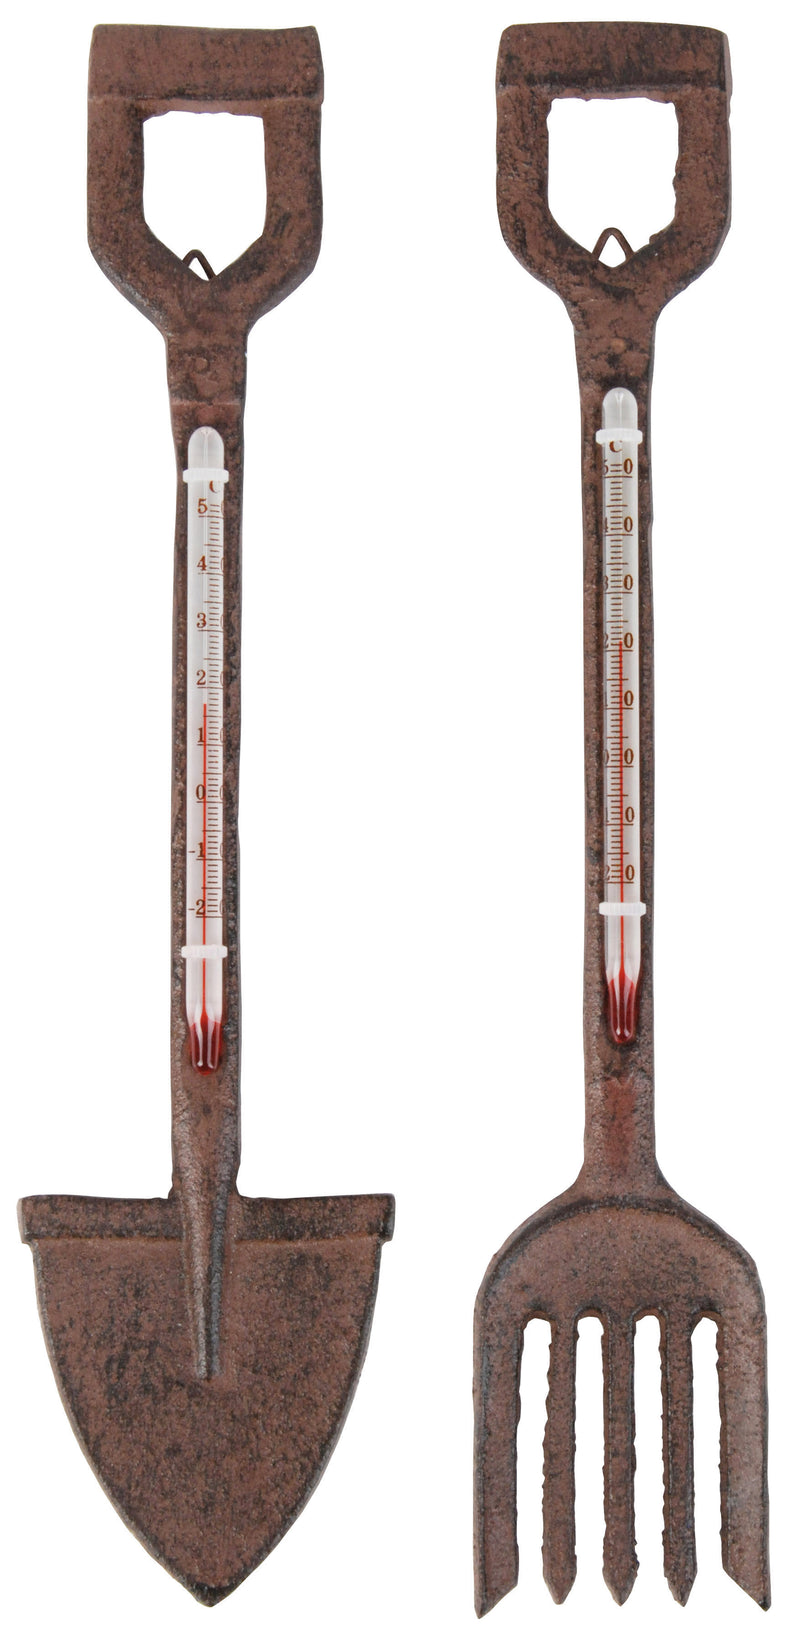 Gifts & Accessories - Cast Iron Thermometer - Spade - Seeds to Sow Limited